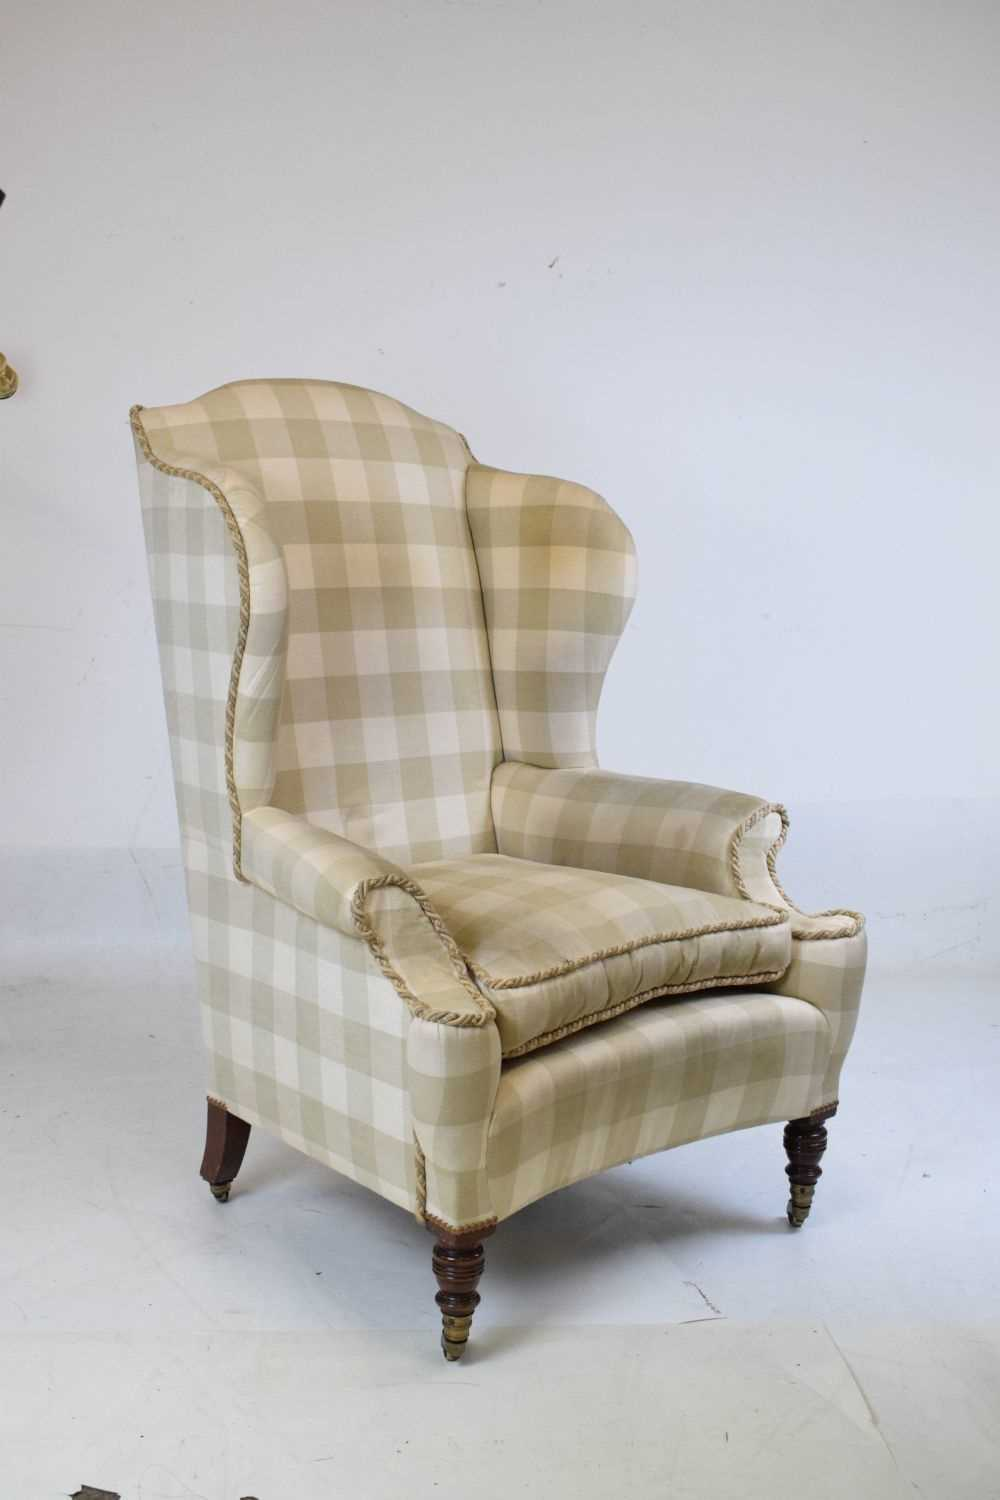 Attributed to Howard & Sons - Late 19th or early 20th Century wing armchair - Image 2 of 10